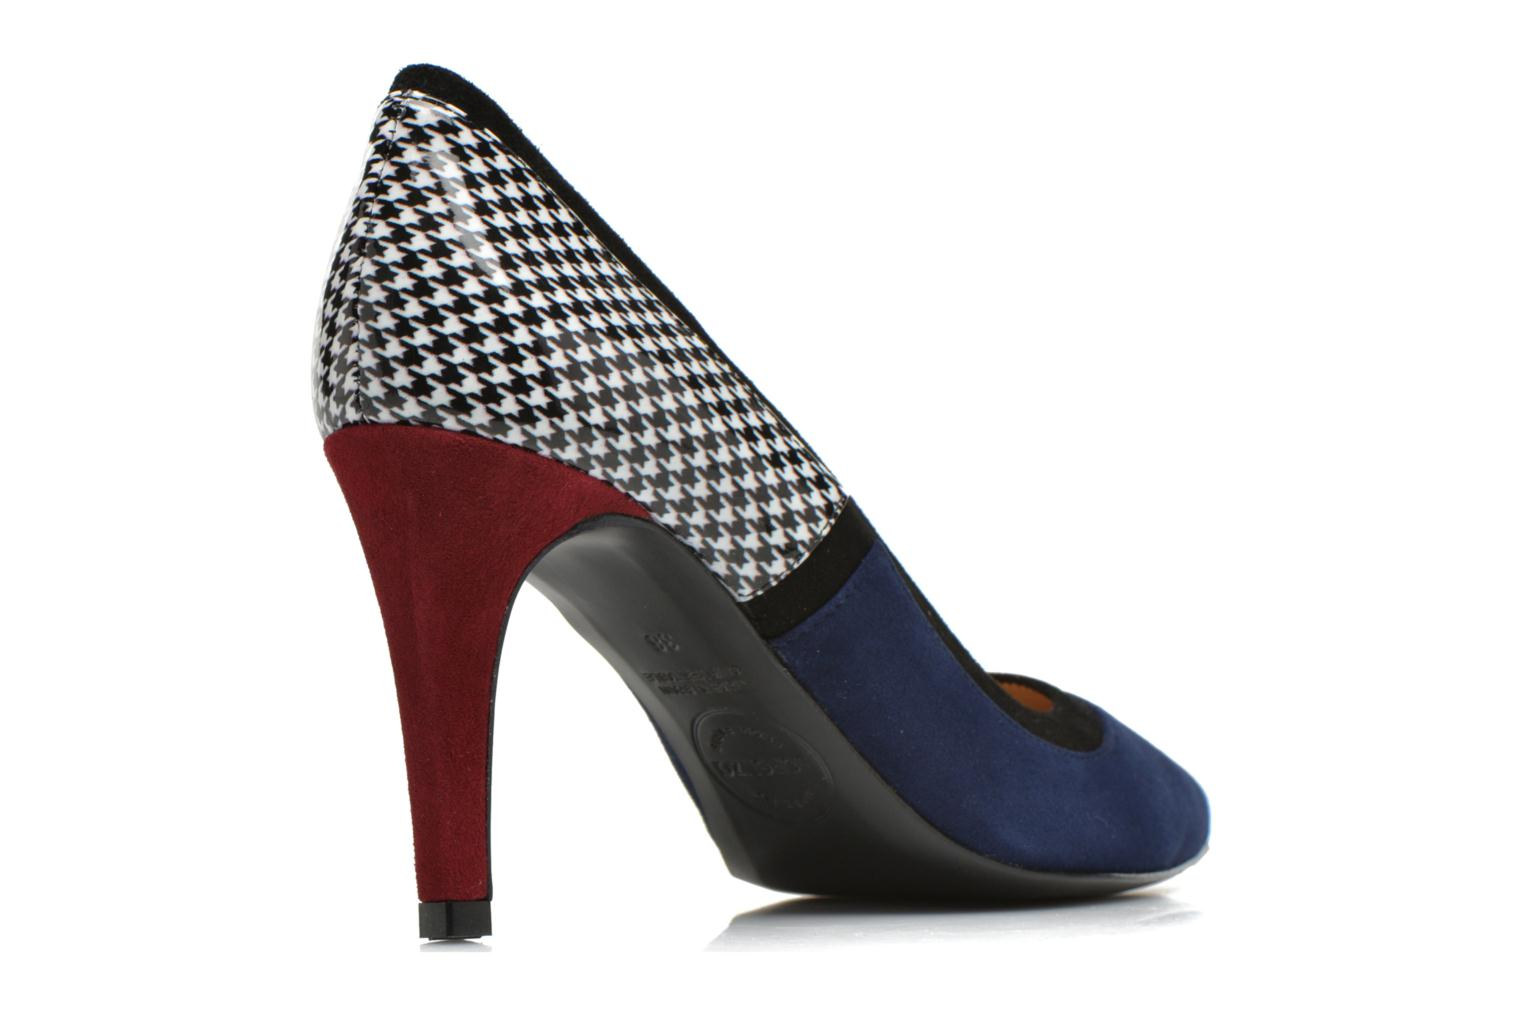 Notting Heels #1 Ante baltico + vernis PDP +ante negro + ante yecla